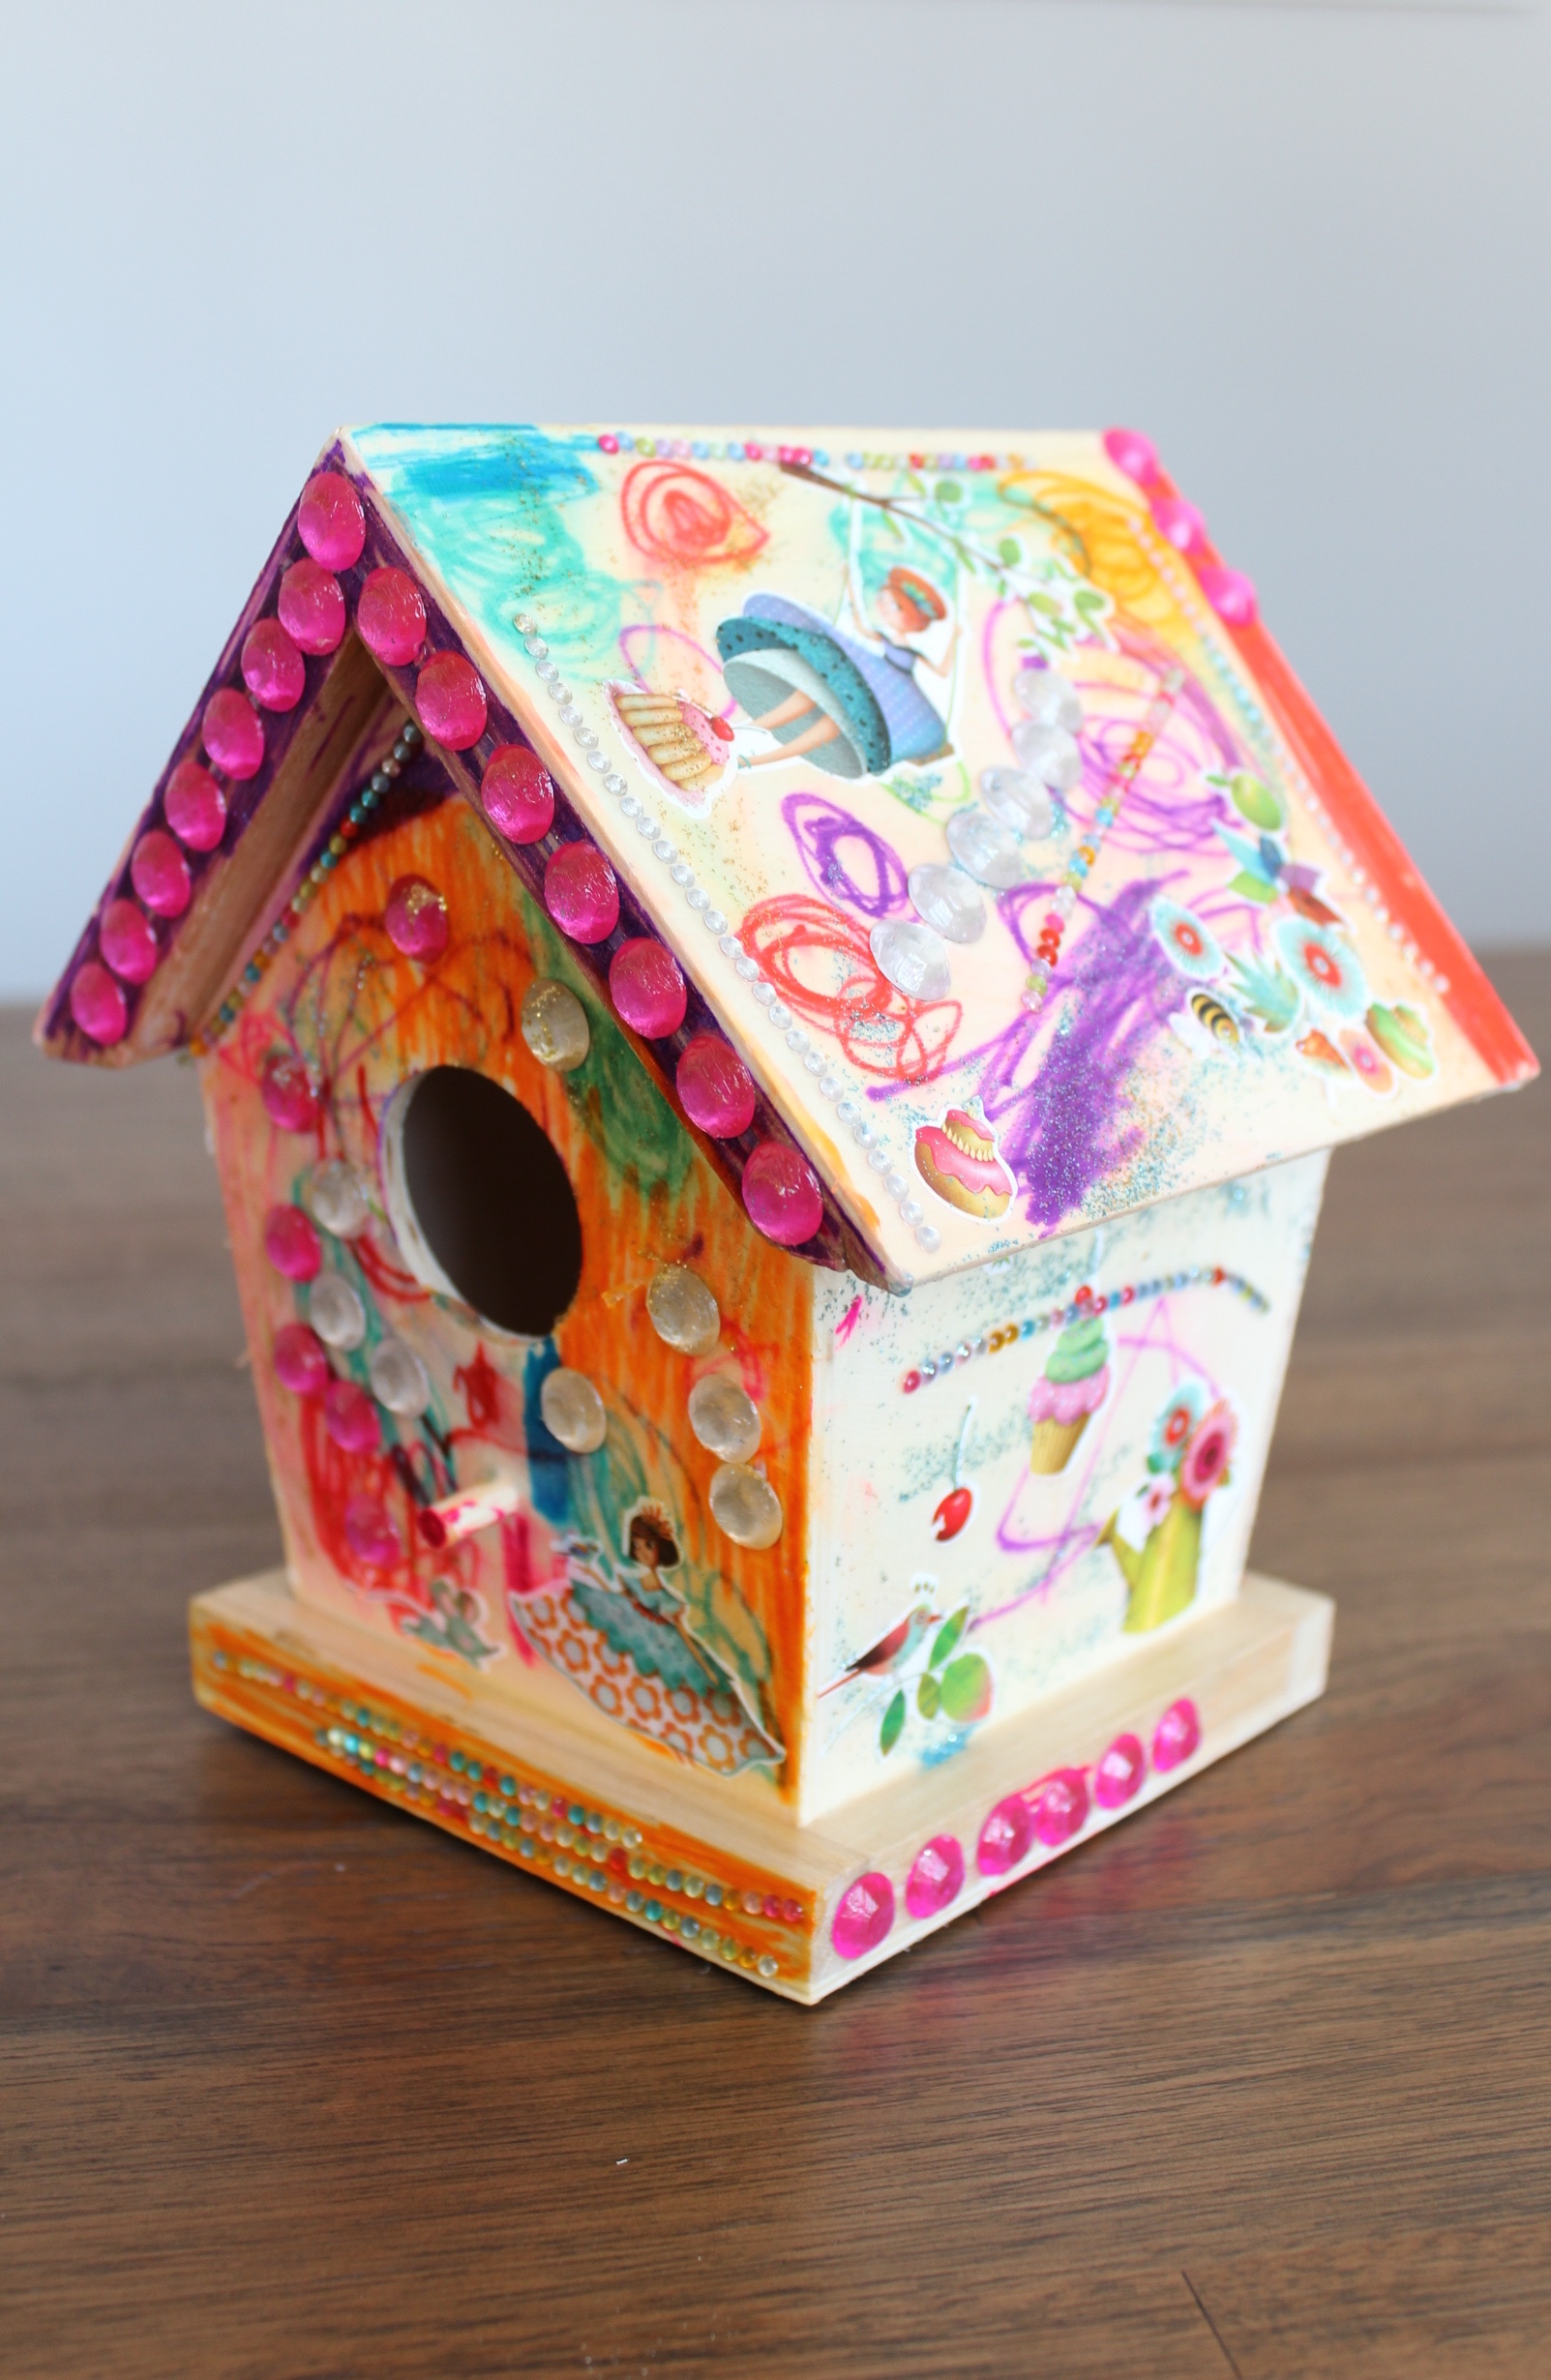 Birdhouse decorated by Danika and Mommy